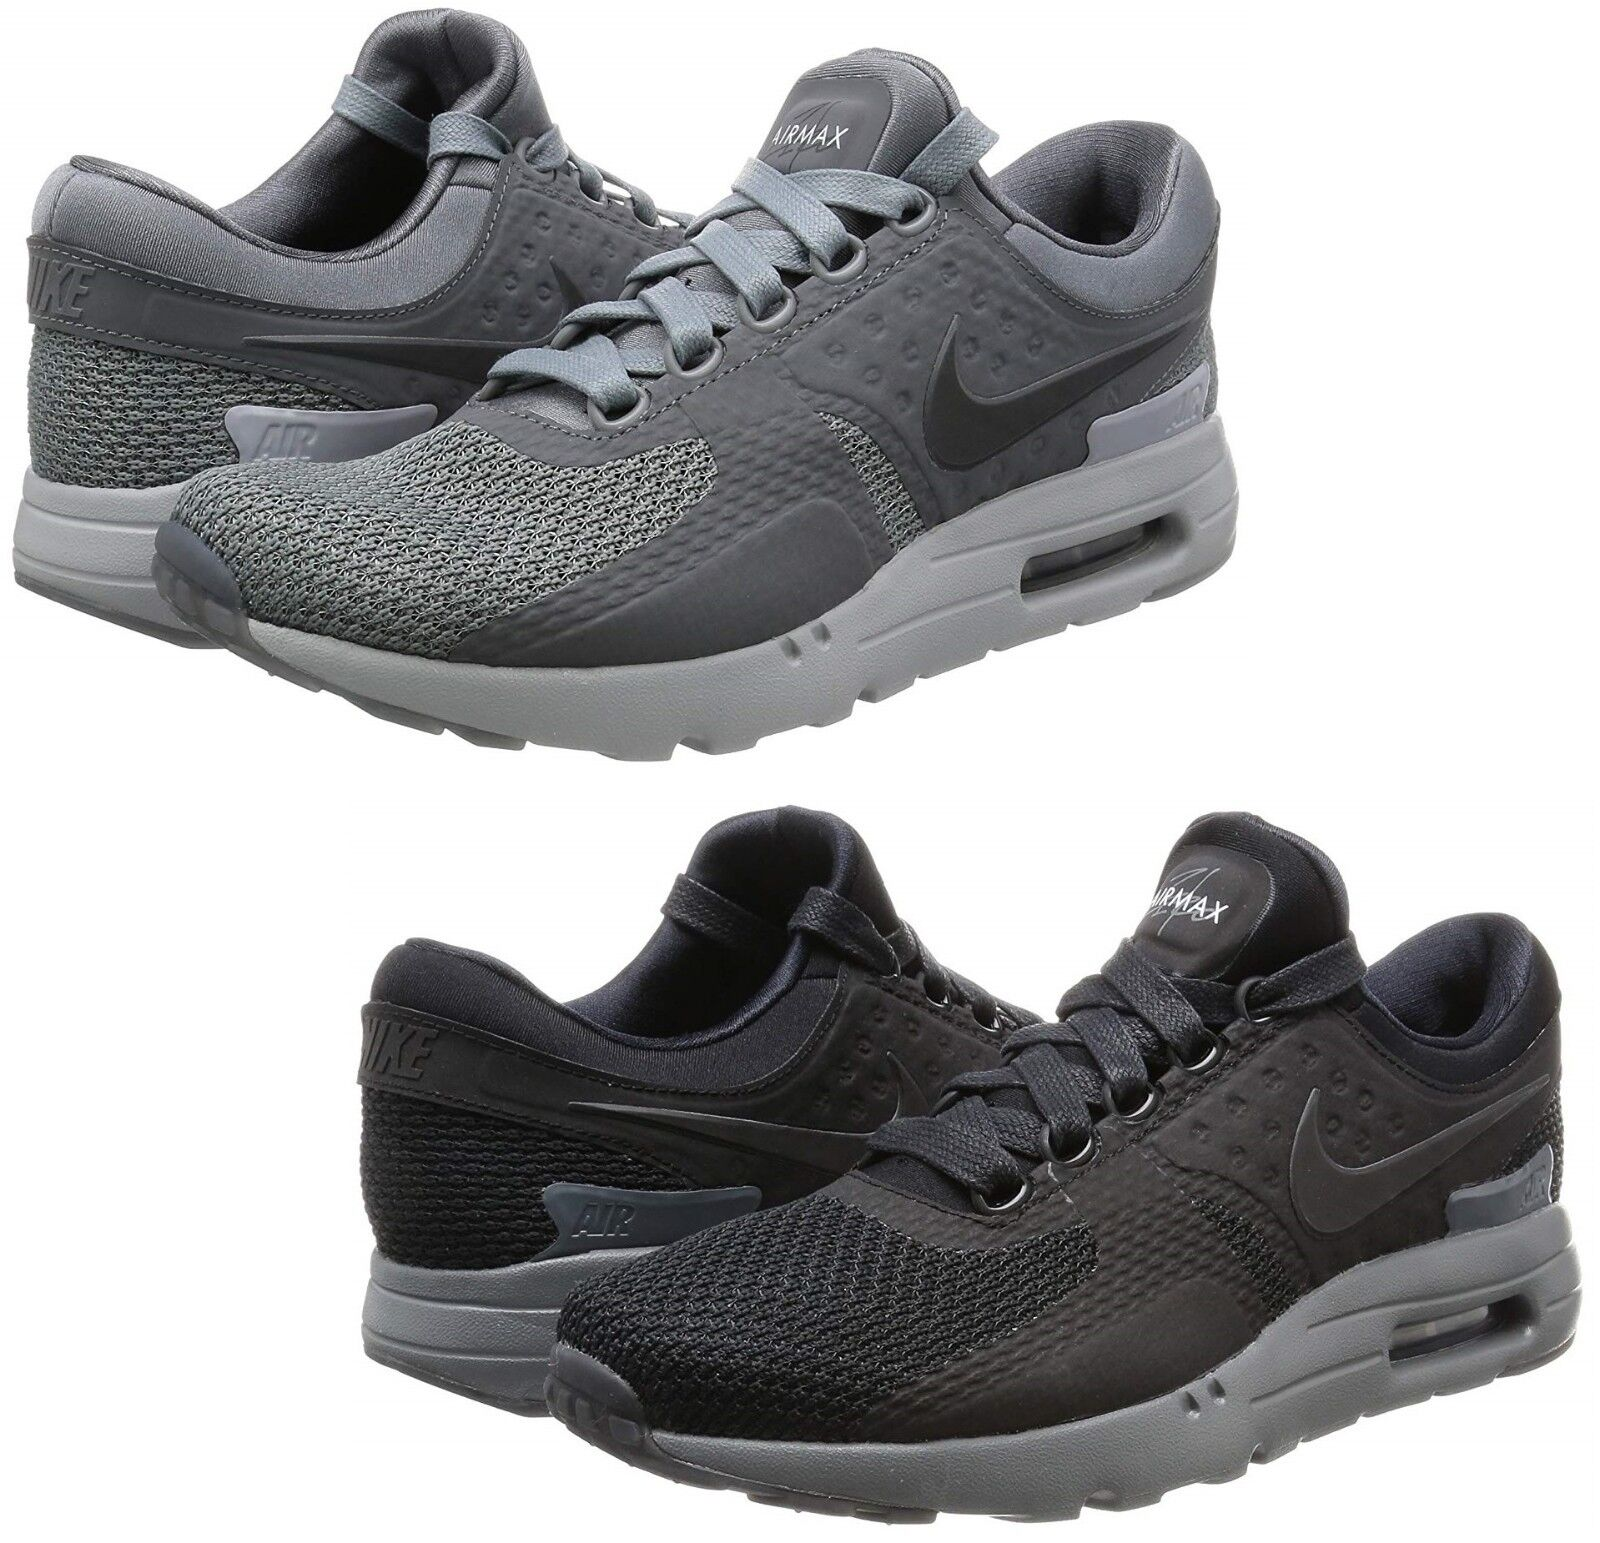 info for 4433b 9f02d Nike Air Max Zero QS Mens 789695-003 Cool Dark Wolf Grey Running Shoes Size  11.5   eBay